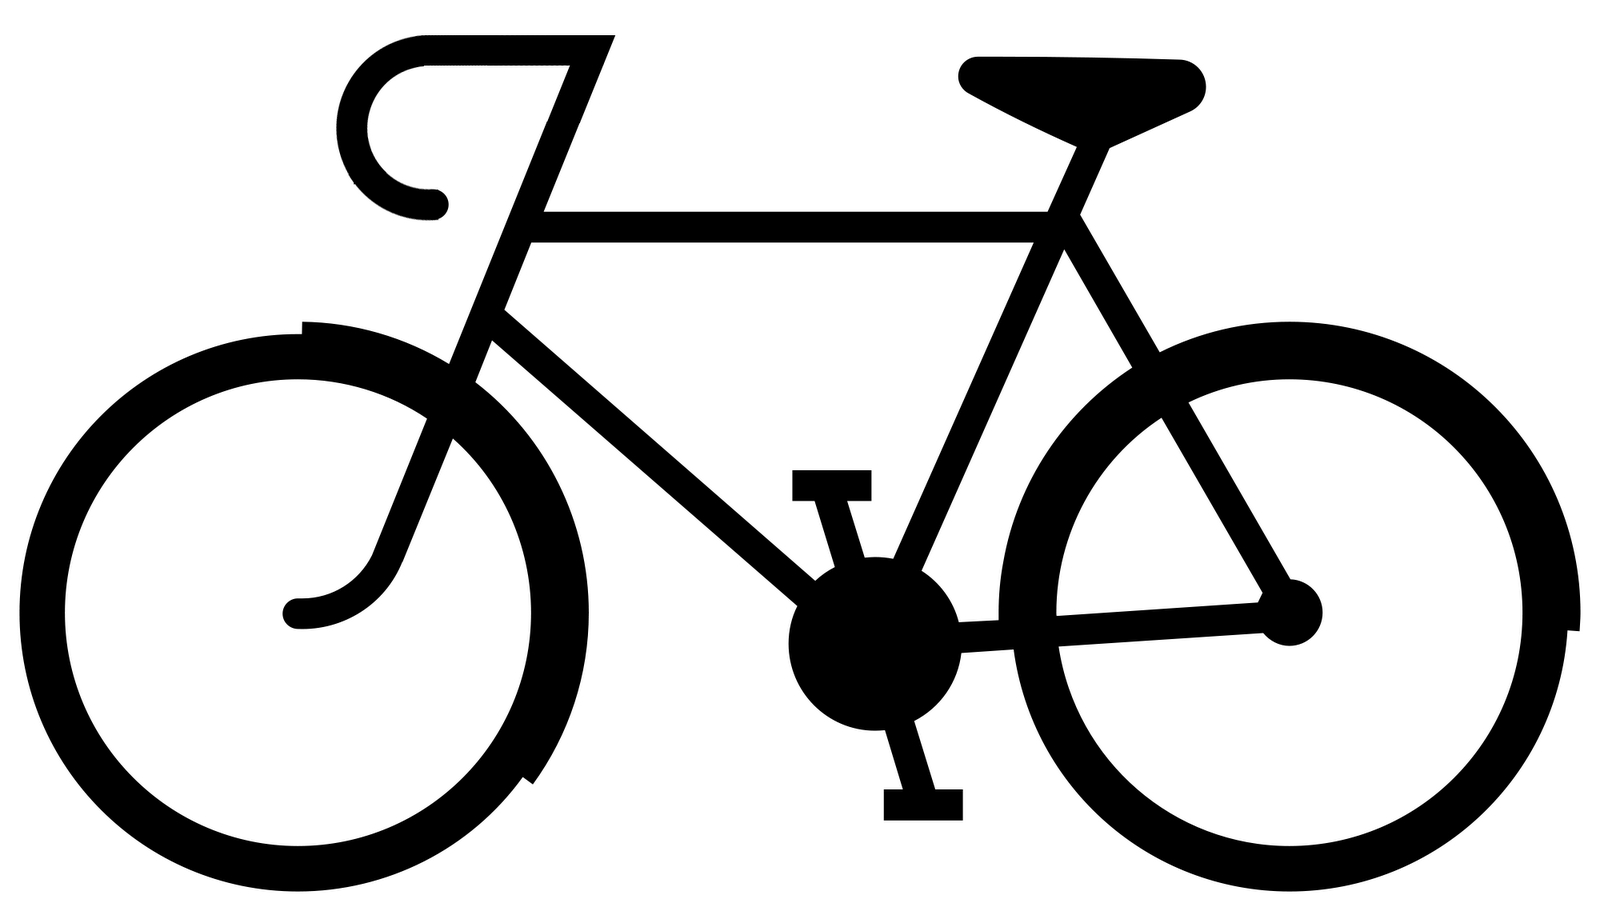 1600x911 Simple Drawing Of Bike Clip Art Bicycle Route Sign Black White